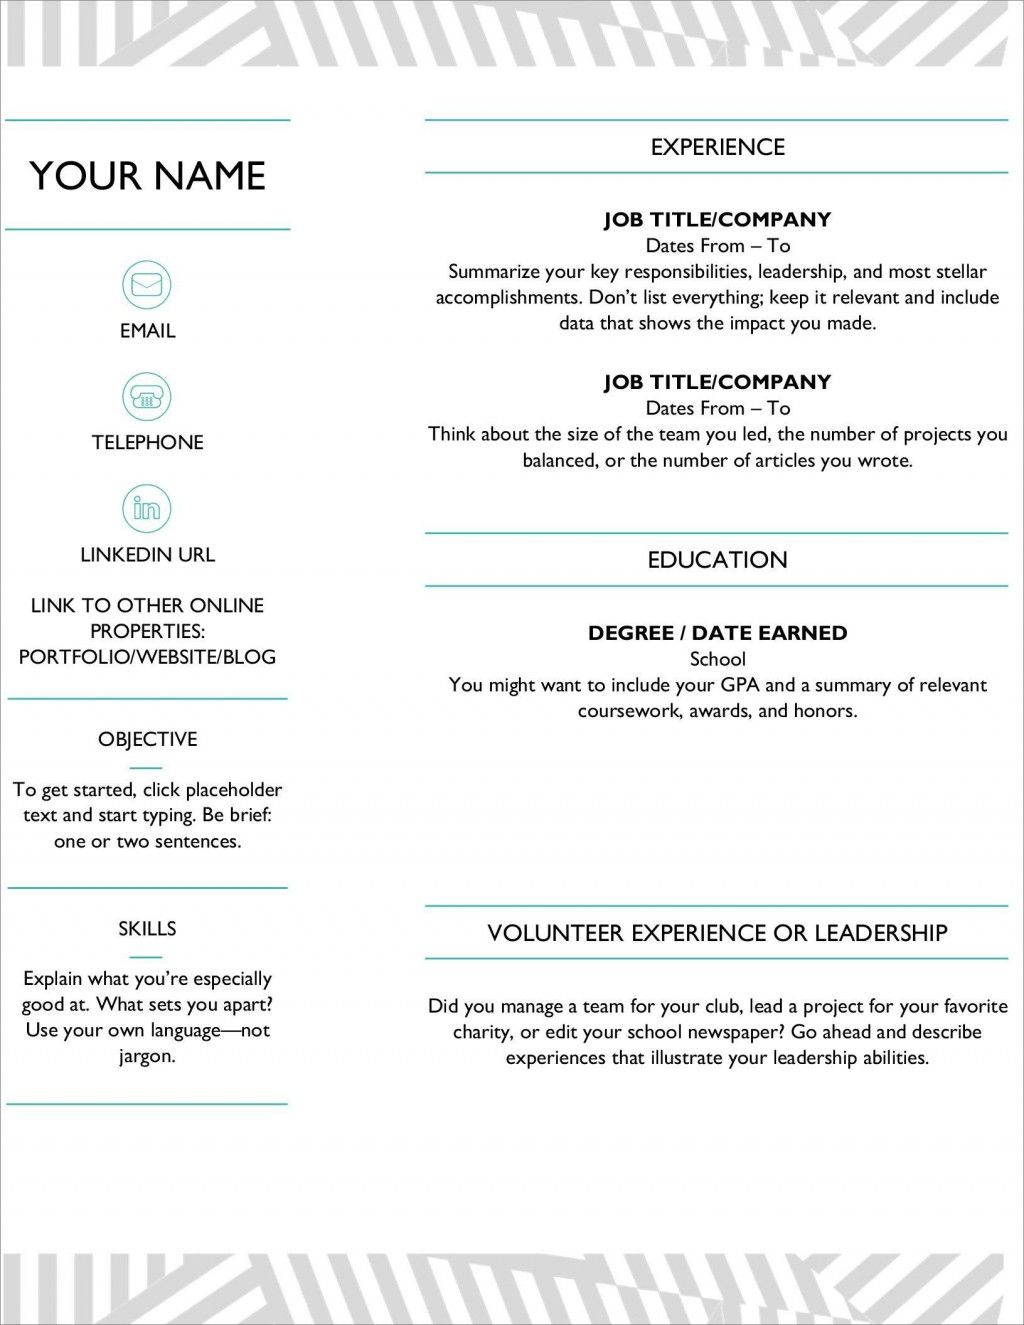 006 Fascinating Professional Resume Template Word High Resolution  Microsoft Download Free 2010 2019Large